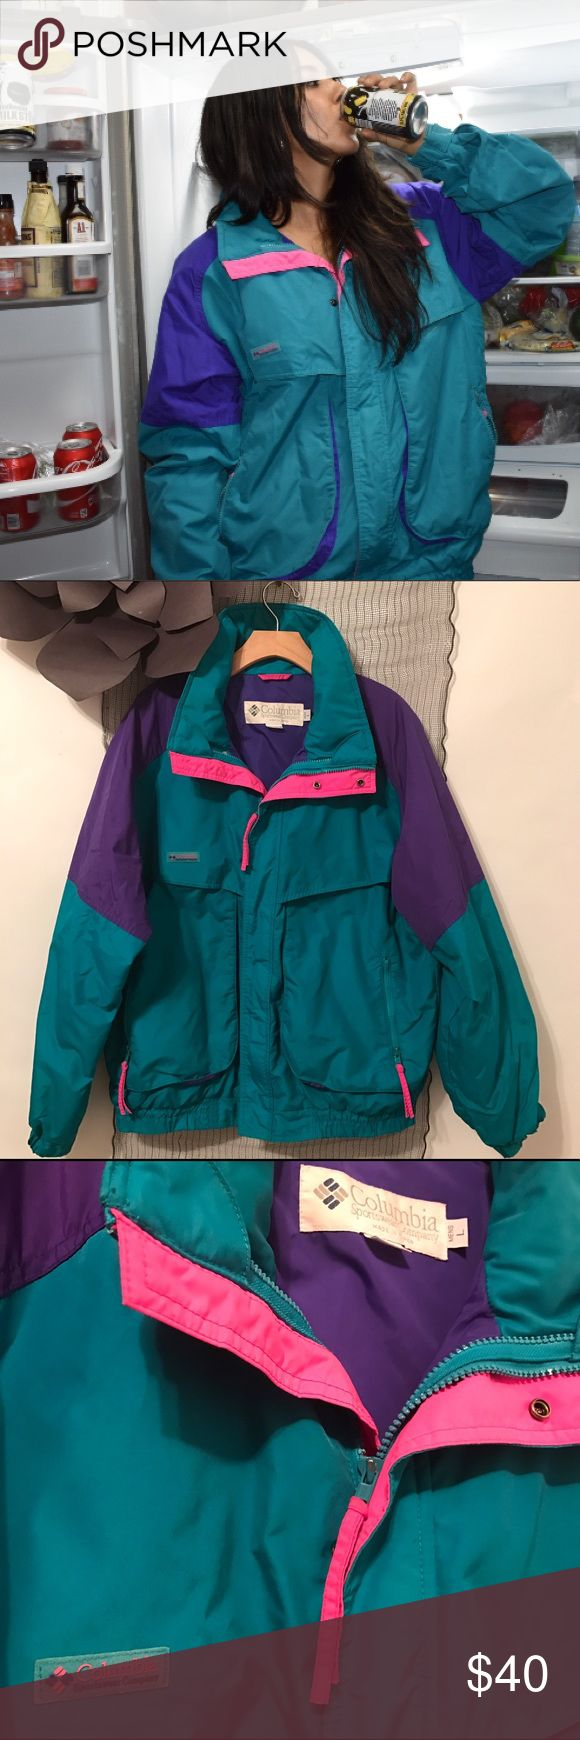 Columbia multicolored sportswear jacket Crack open a cold one with the boys in this  beauty.Rare 1980's multicolored Columbia Powder Keg jacket. One of the most trusted brands in outdoor gear and apparel, Columbia's been A1since day one. I love the colorful look and this jacket is in GREAT condition just a little teal missing on the zipper (3rd pic)! In a men's large but totally unisexy. Columbia Jackets & Coats Ski & Snowboard